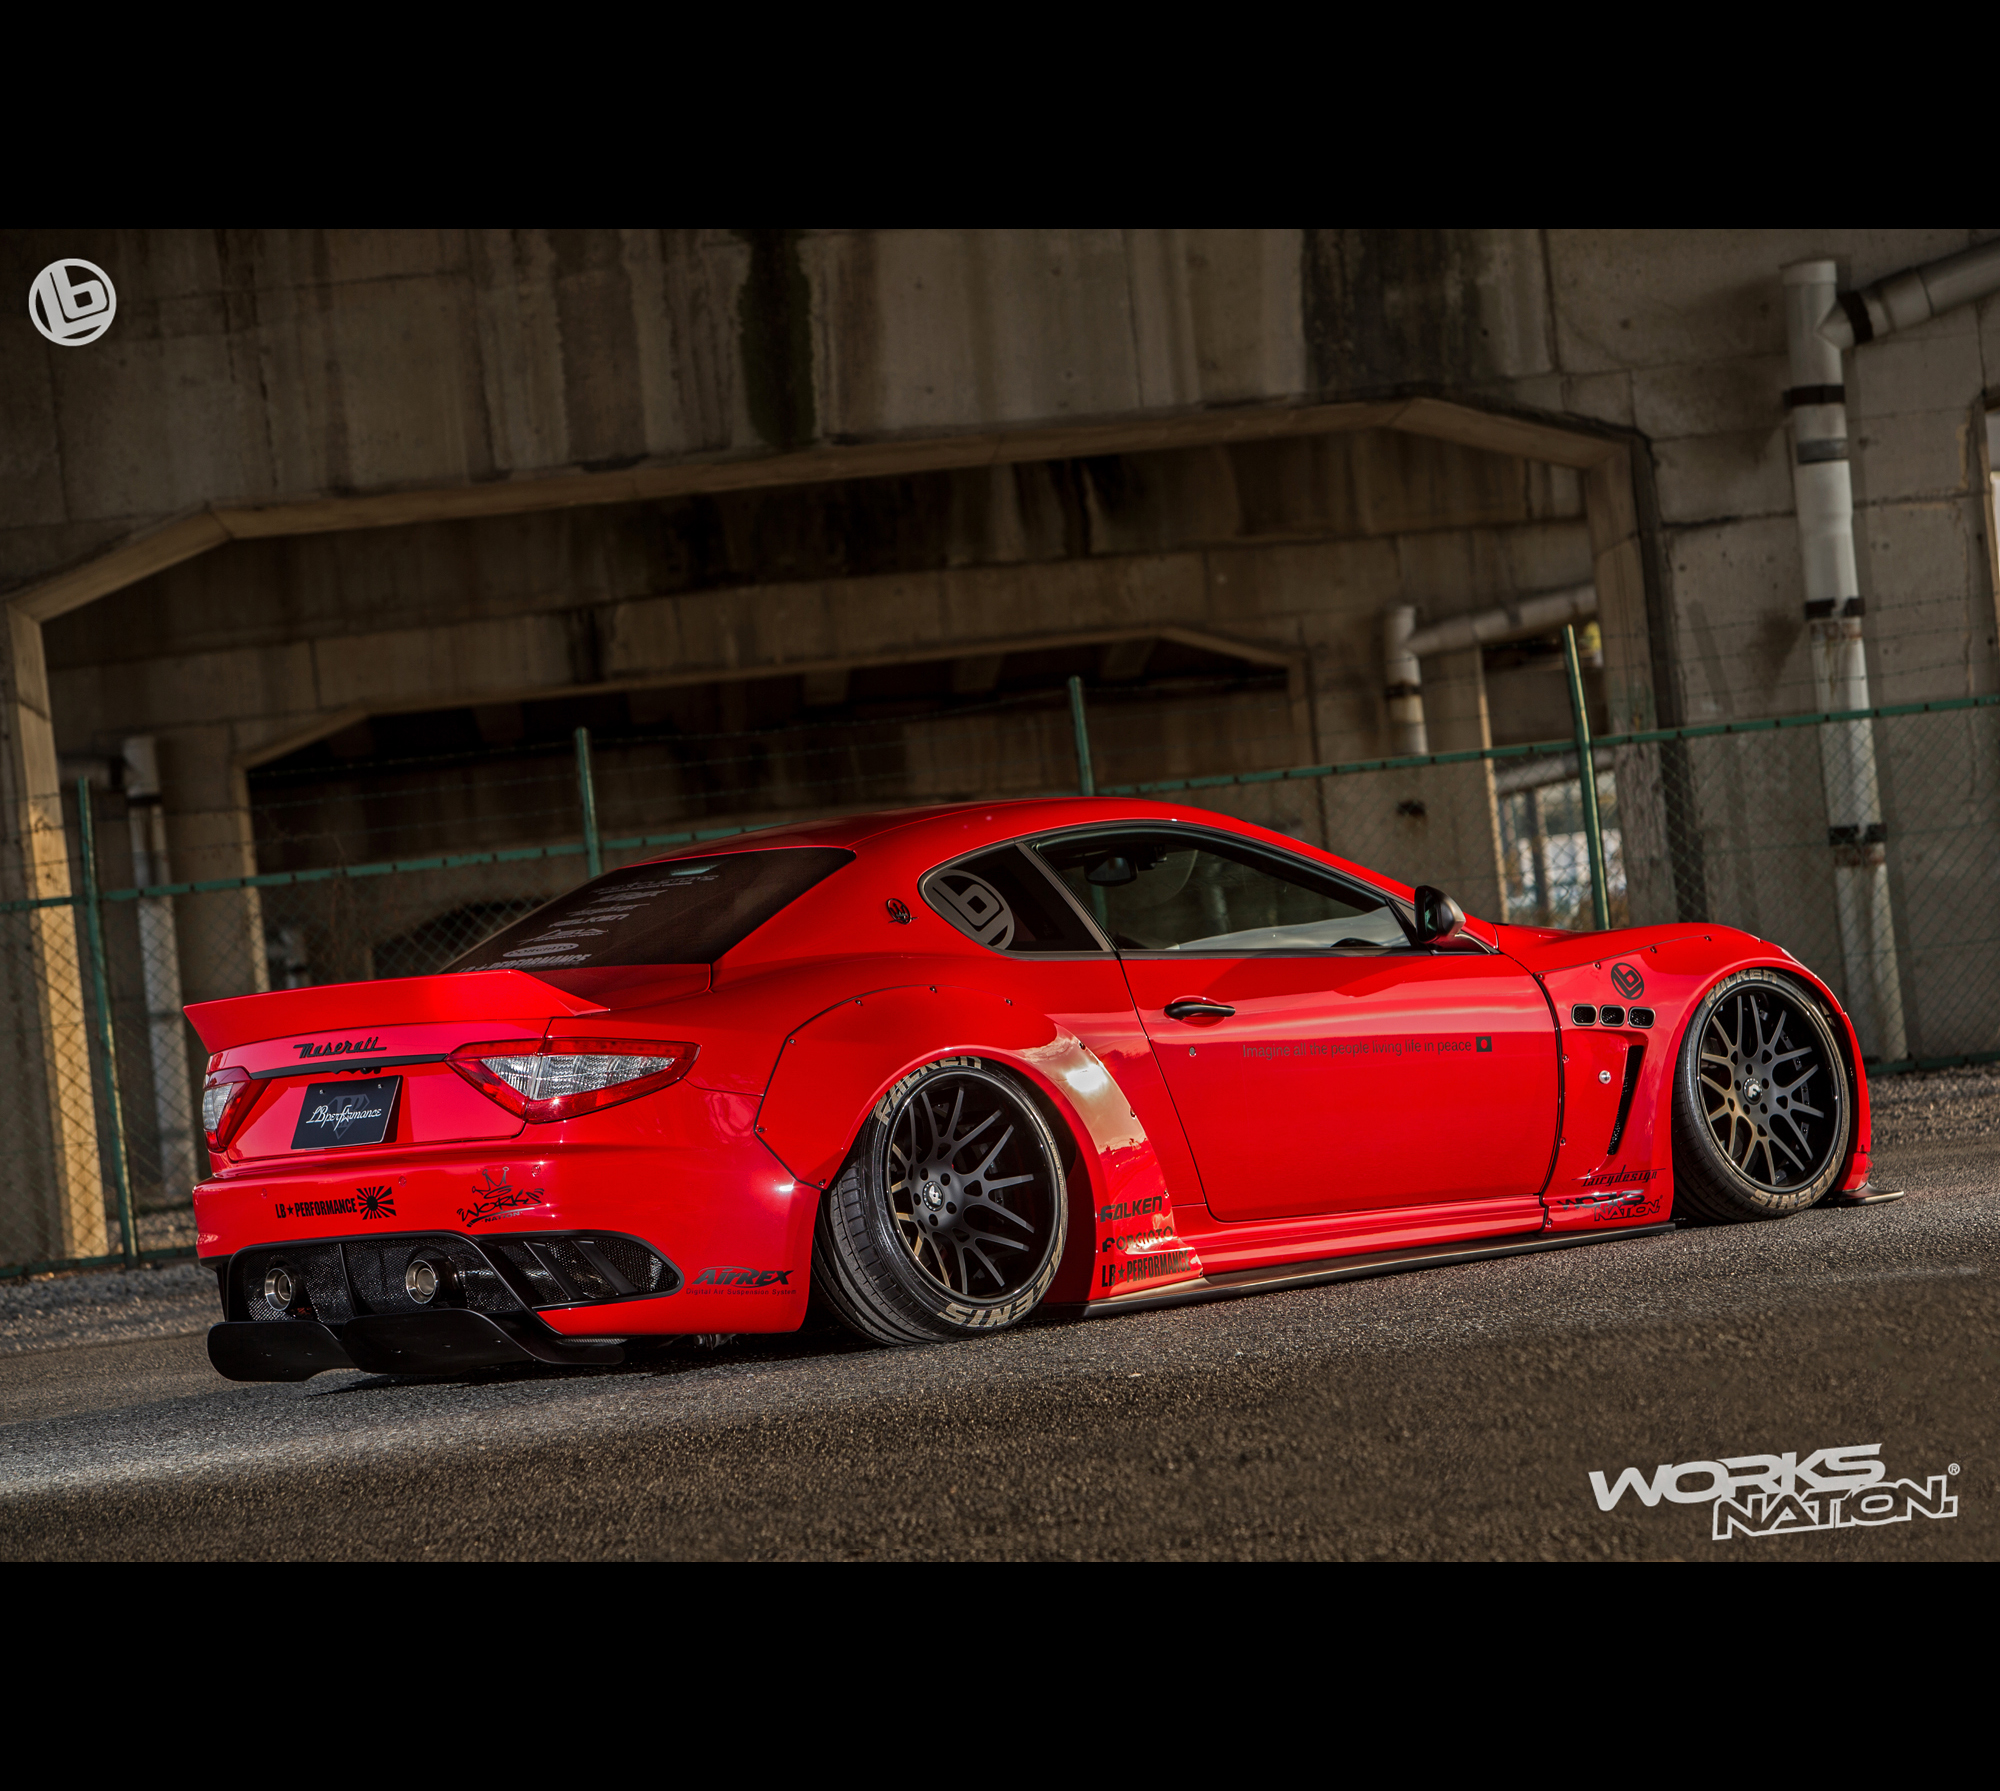 2016 Porsche Cayman S Review >> Liberty Walk/LB Performance Maserati Granturismo Wide Body Kit [FRP]